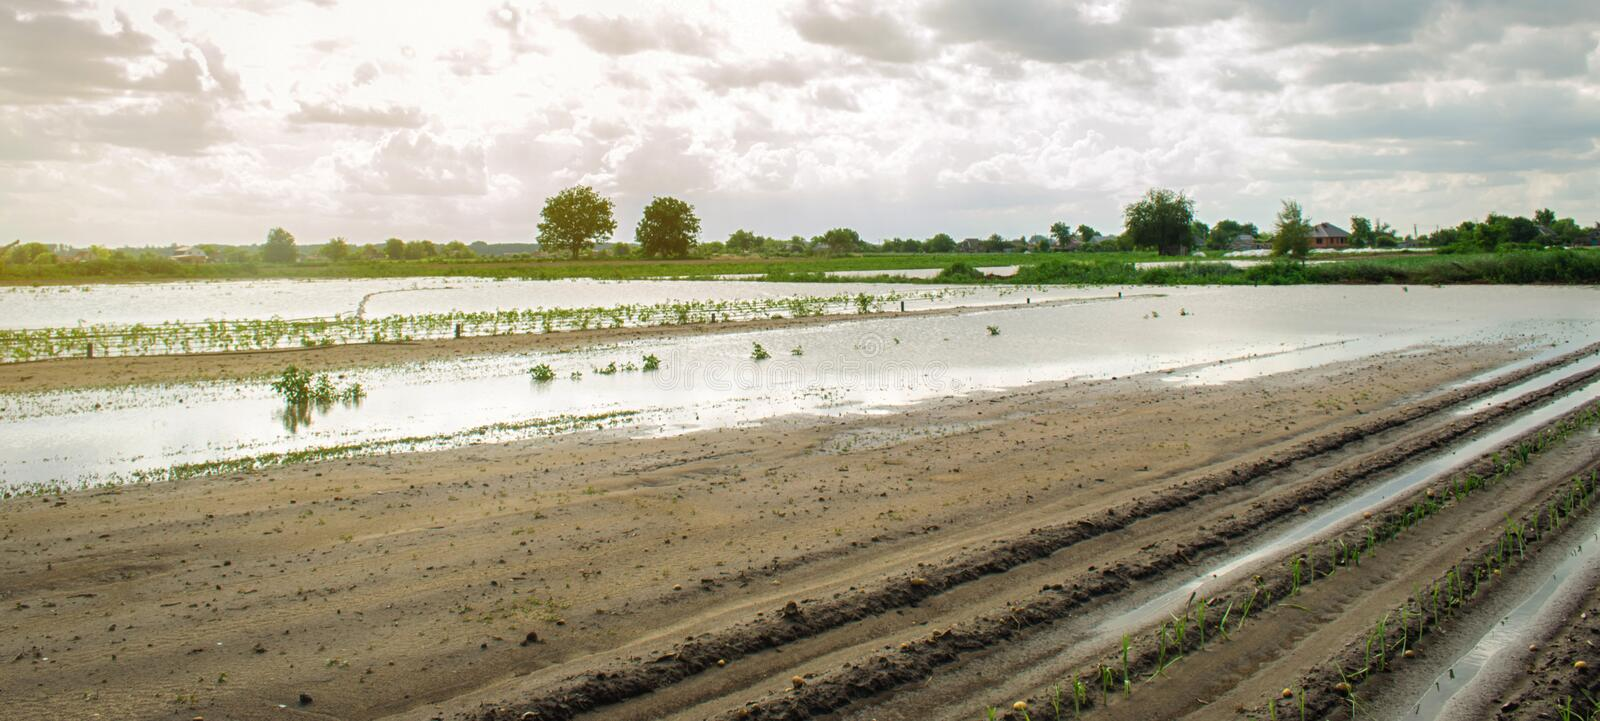 Flooded field as a result of heavy rain. Flood on the farm. Natural disaster and crop loss risks. Agriculture and farming. Ukraine. Kherson region. Leek royalty free stock image